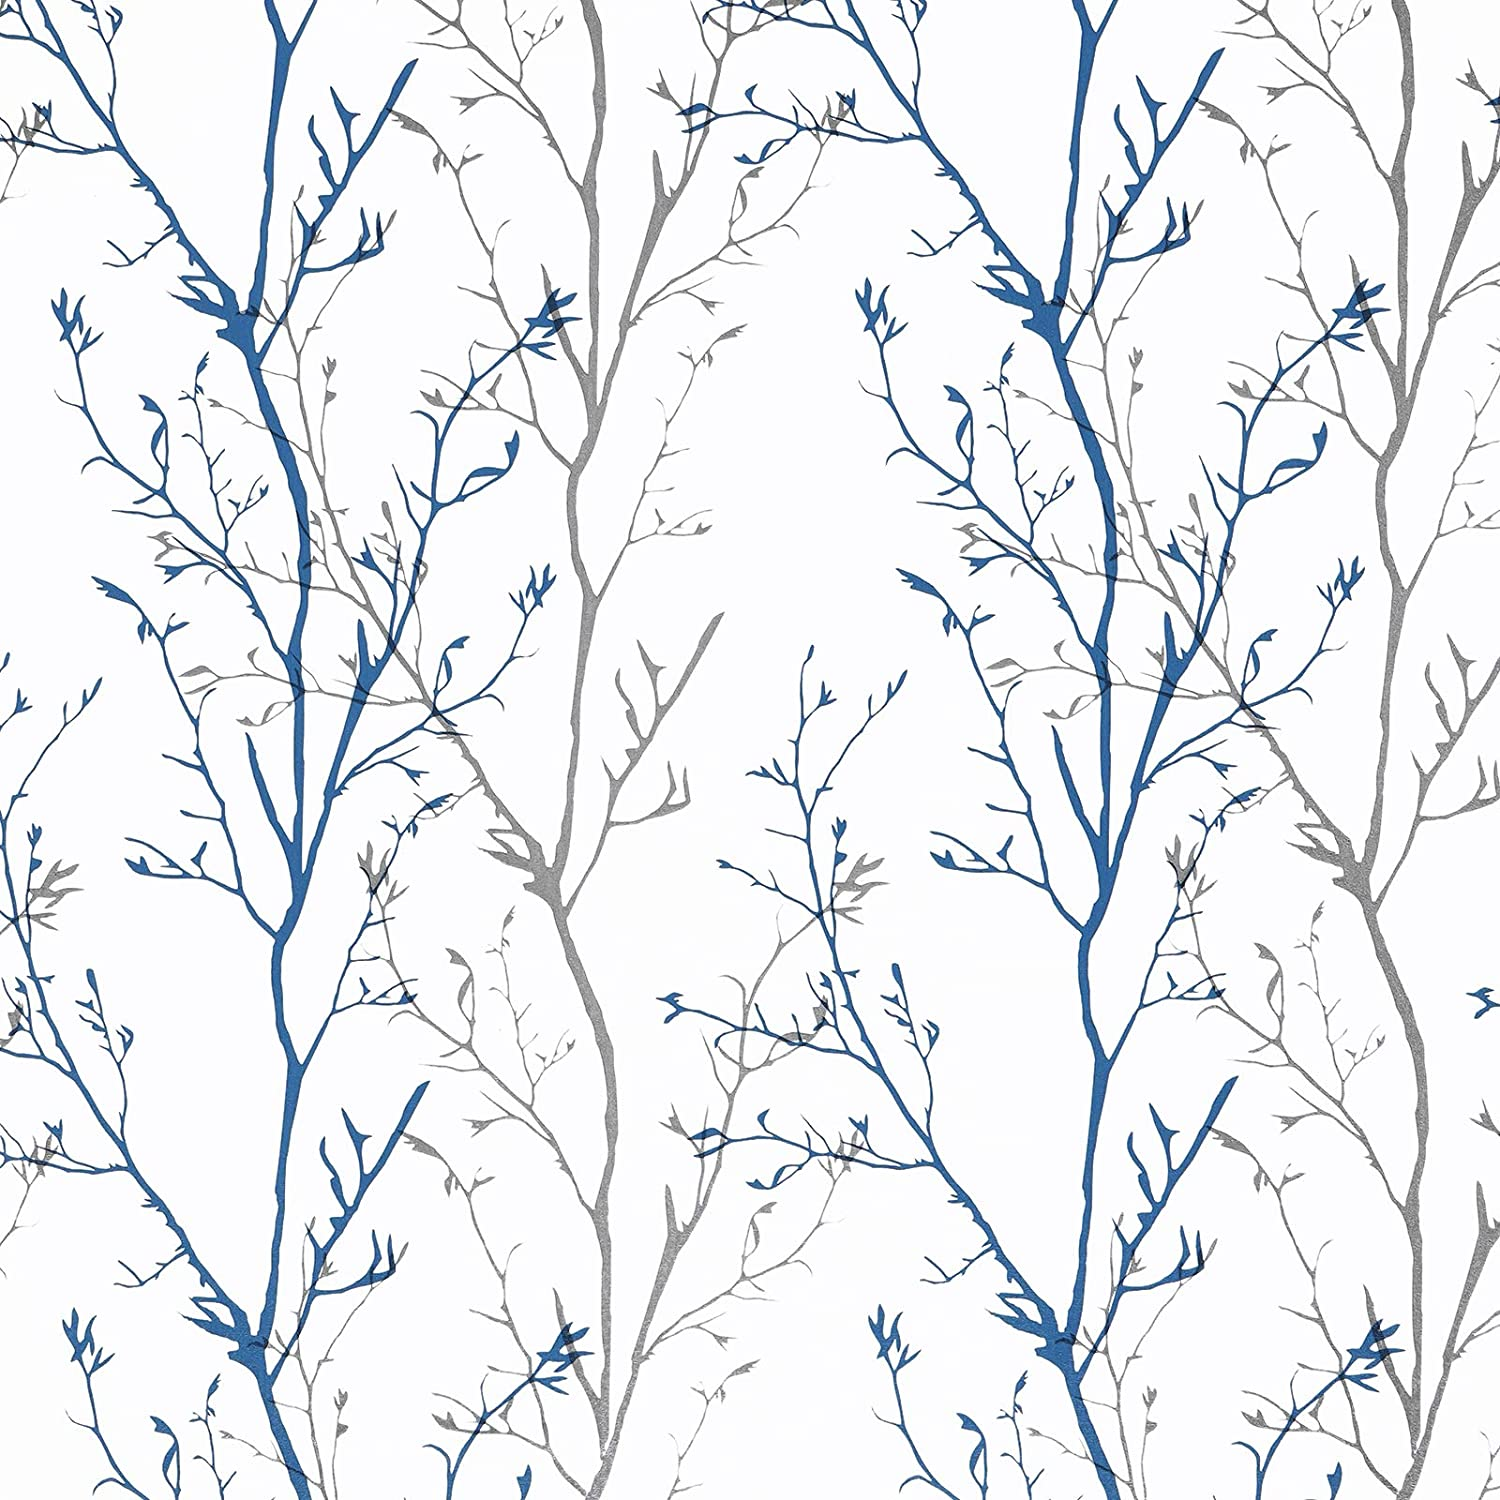 """Melwod Grey Blue Tree Branches Peel and Stick Contact Paper 17.71"""" x 78.7"""" Modern Tree Branch Removable Wallpaper Natural Wall Paper Self-Adhesive Vinyl for Drawer Liner Furniture Crafts Accent Walls"""